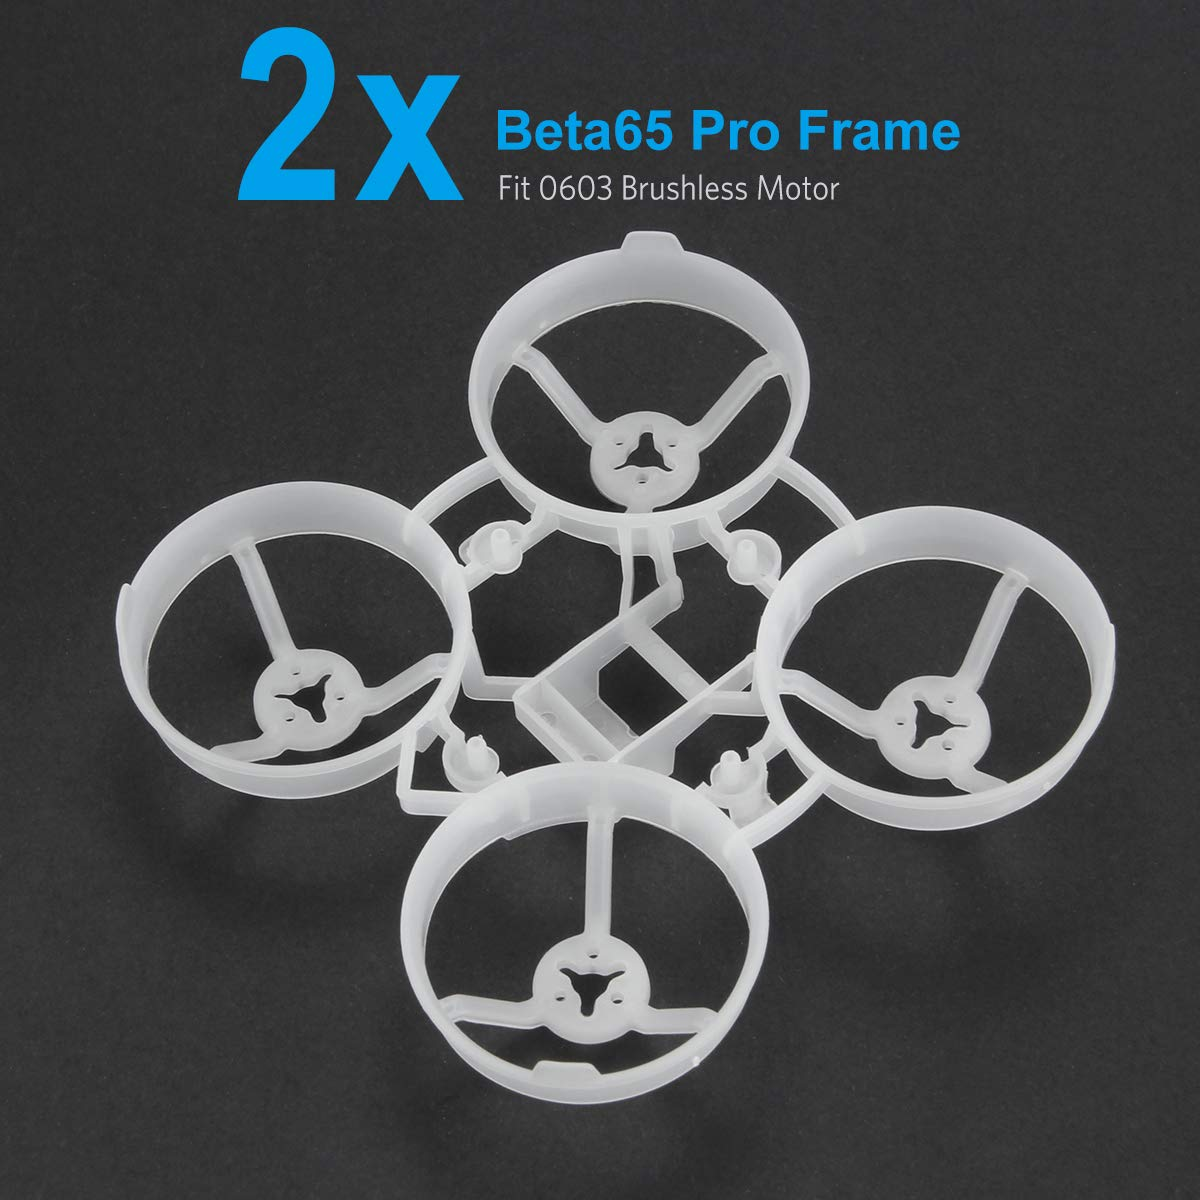 Betafpv 2pcs Beta65 Pro Micro Brushless Whoop Upgraded What Is A Motor And How Does It Work Frame For 0603 1s Brusheless Toys Games